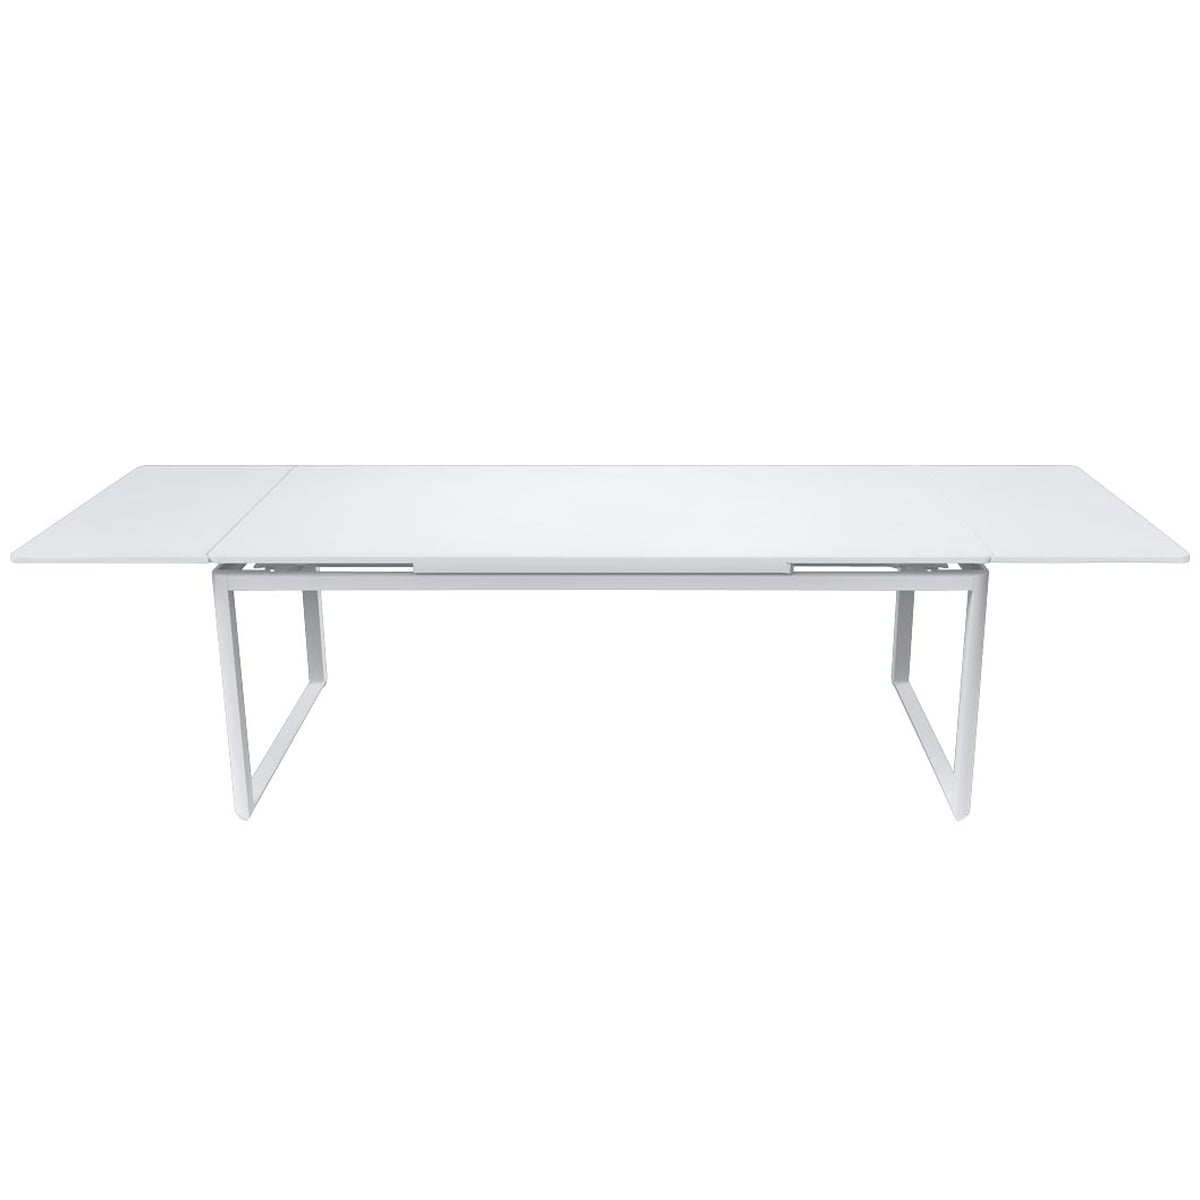 Biarritz Extending Table By Fermob In Cotton White Amazing Design